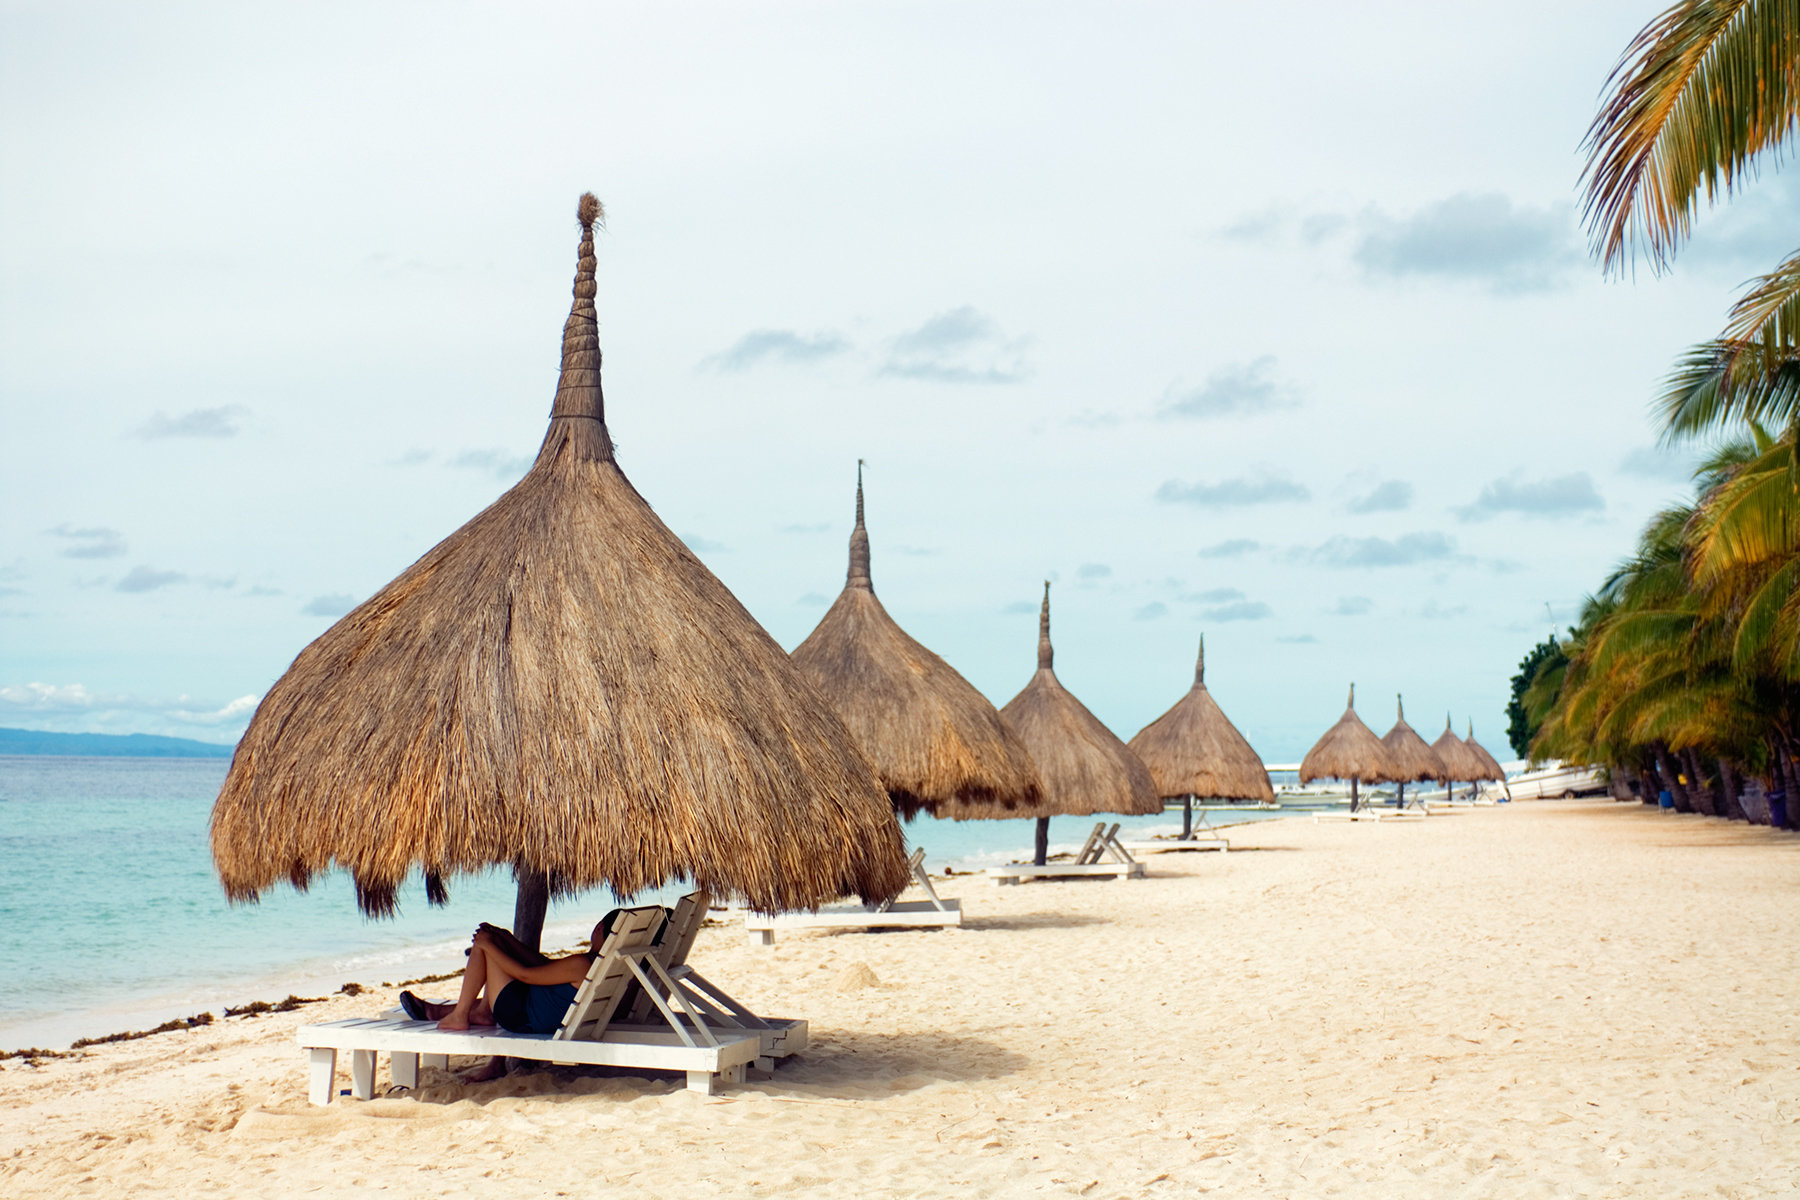 Philippines, People relaxing under thatched beach umbrellas, Bohol Beach Club, Alona Beach, Panglao Island, Visayas